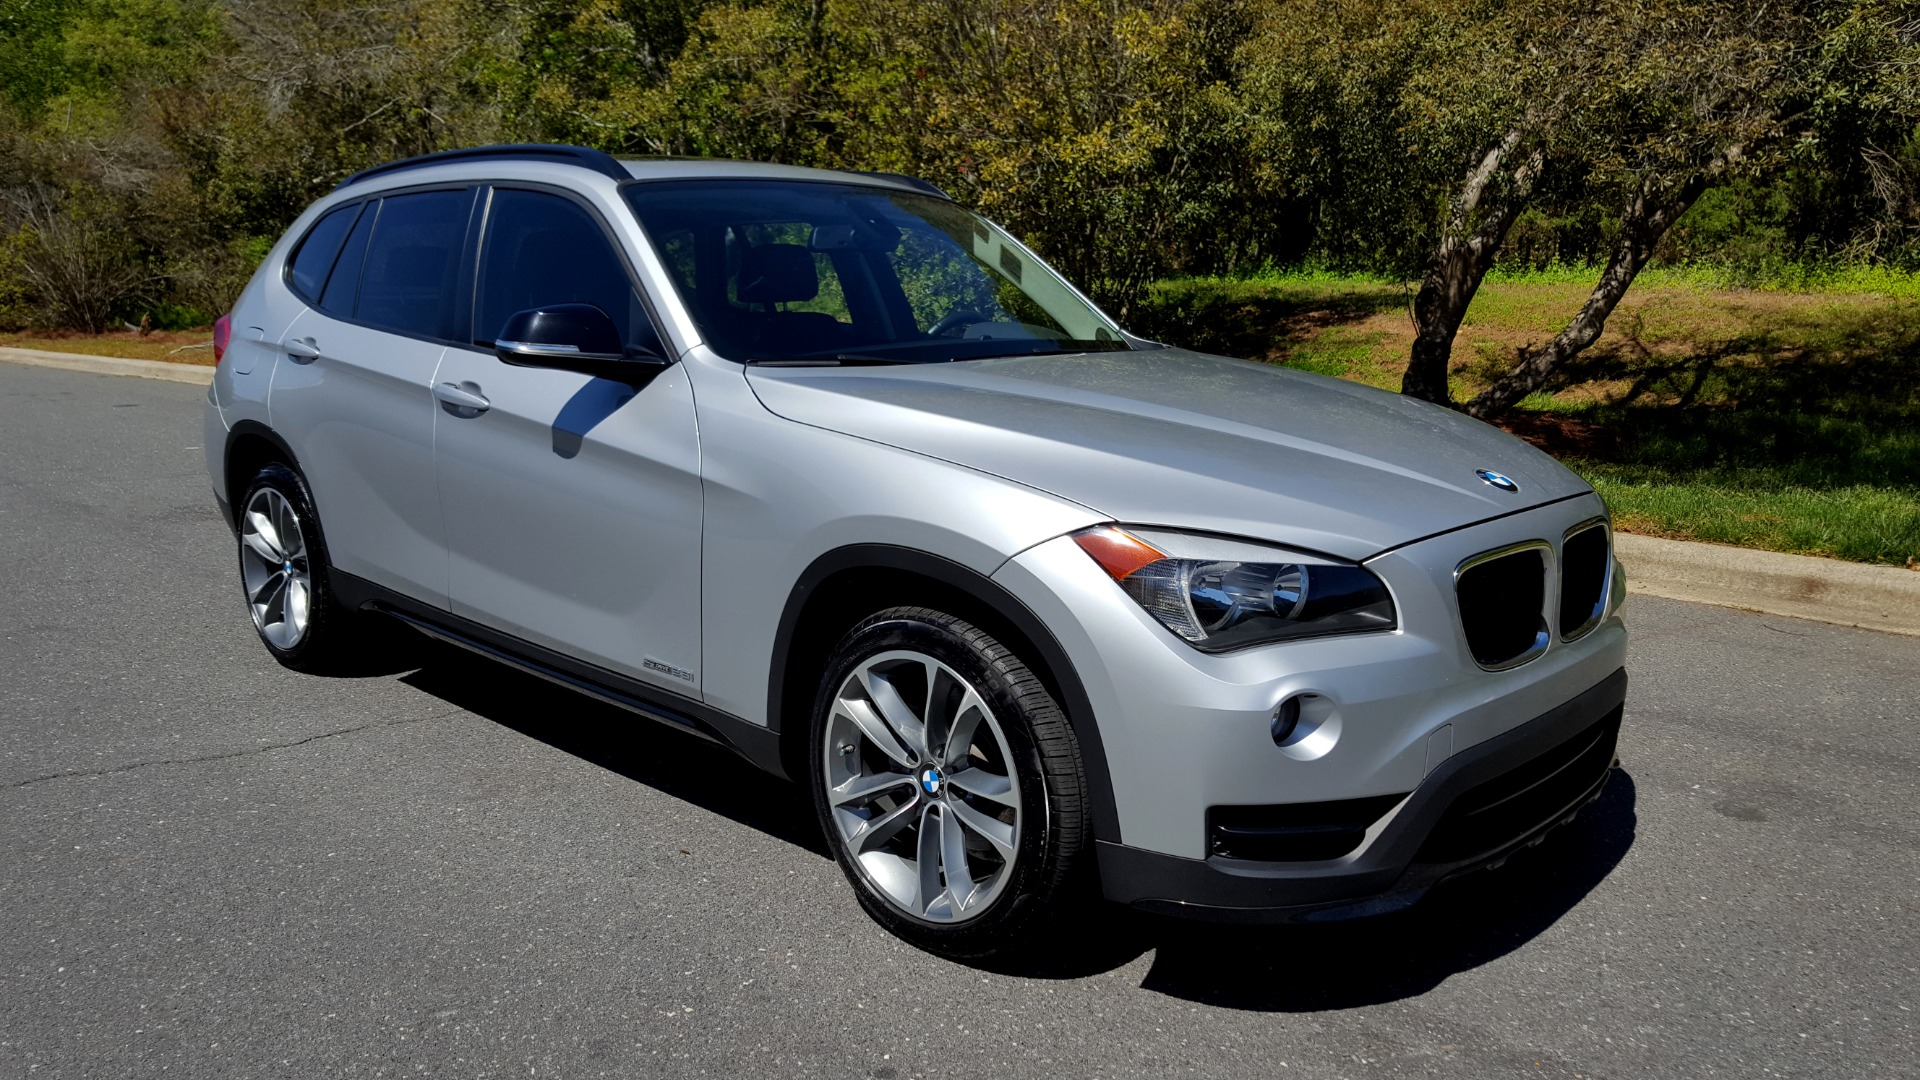 Used 2015 BMW X1 SDRIVE28I / SPORT LINE / PANO-ROOF / HTD STS / DUAL-ZONE CLIMATE for sale Sold at Formula Imports in Charlotte NC 28227 6